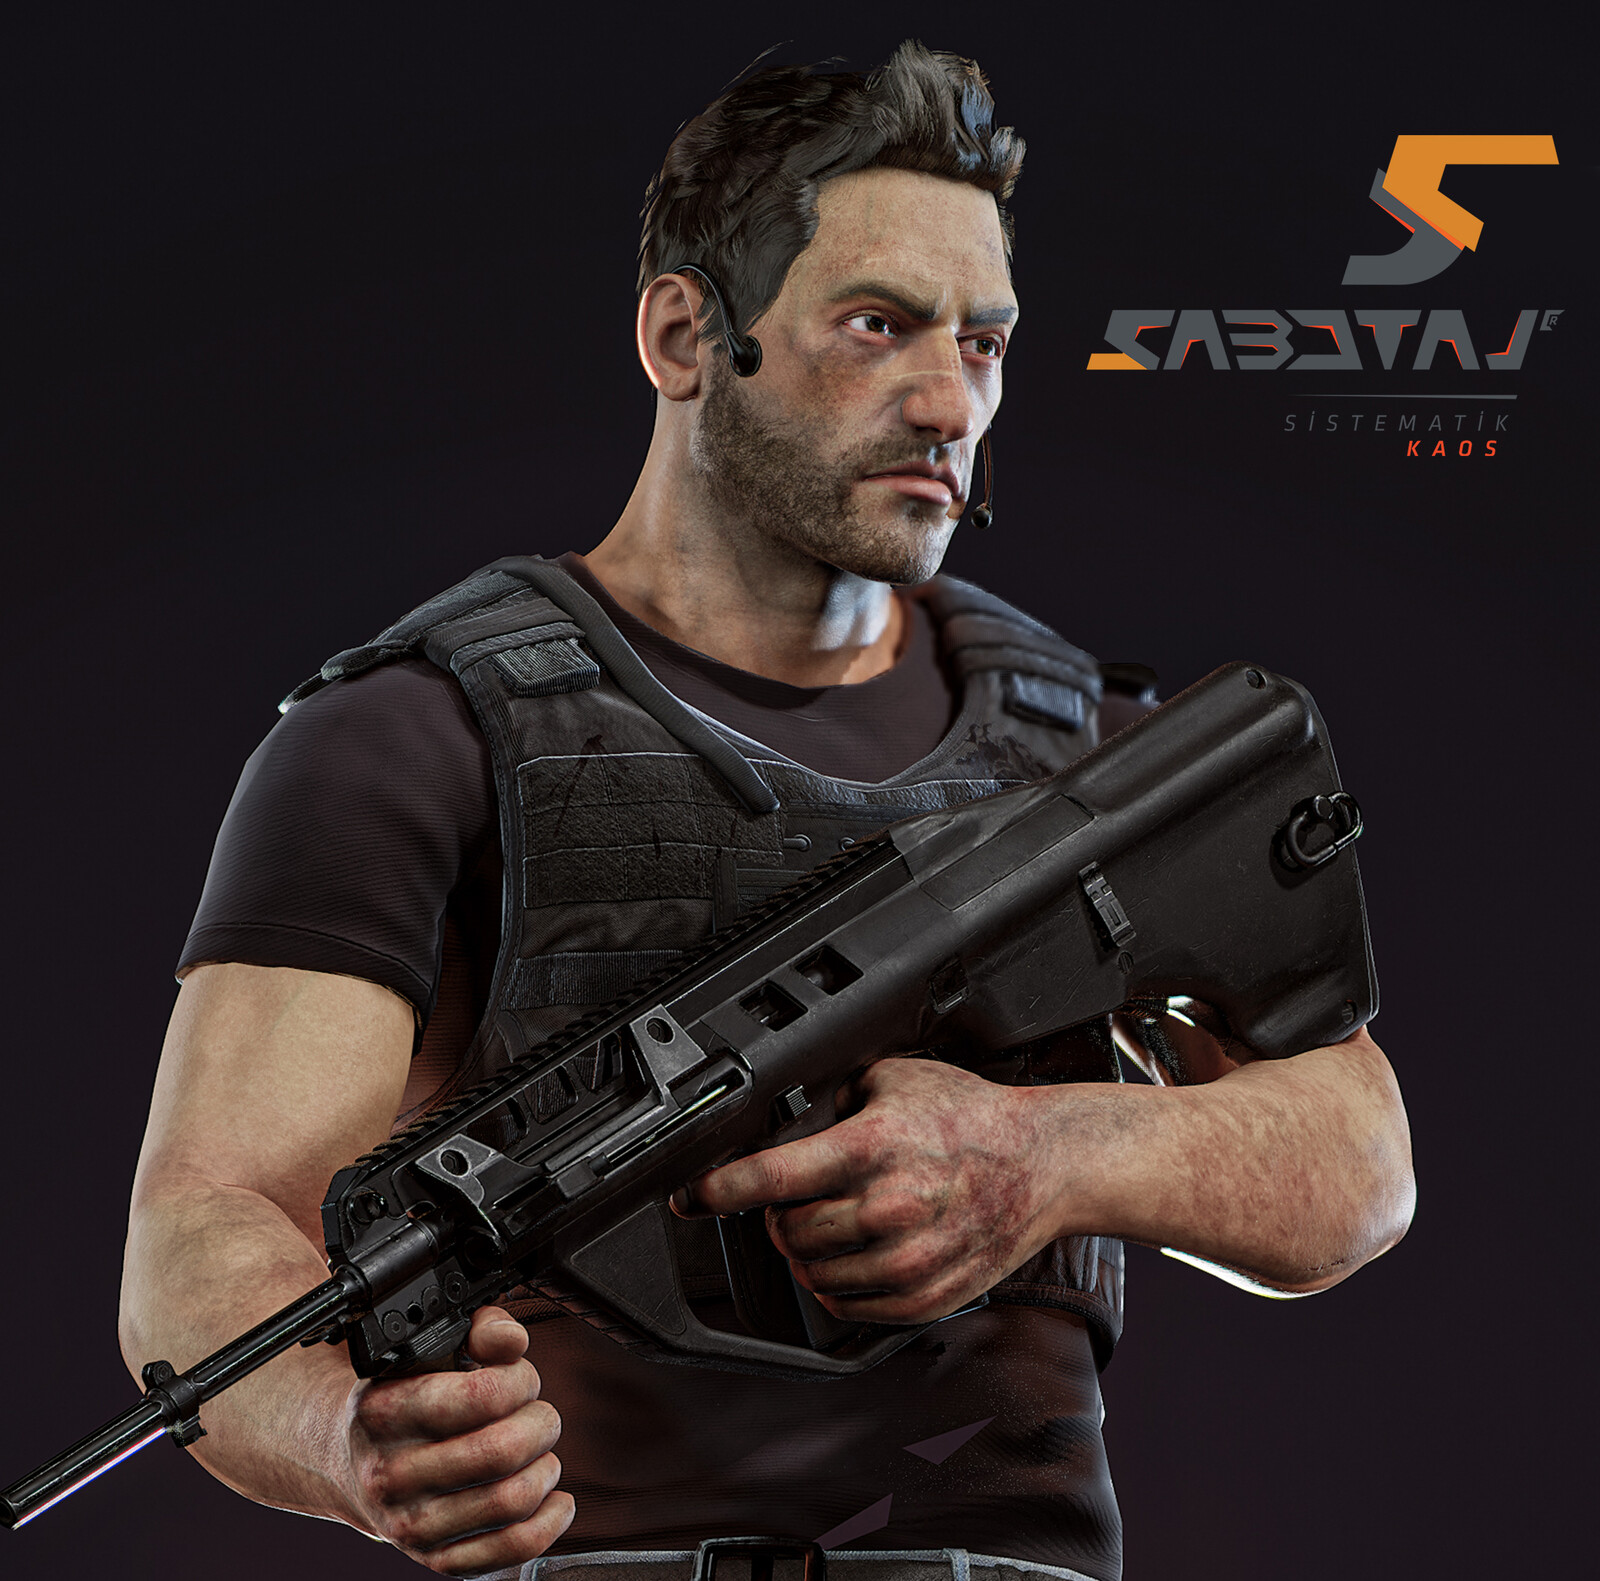 Arthur Character Art for Sabotaj (Sabotage) MMO FPS Game